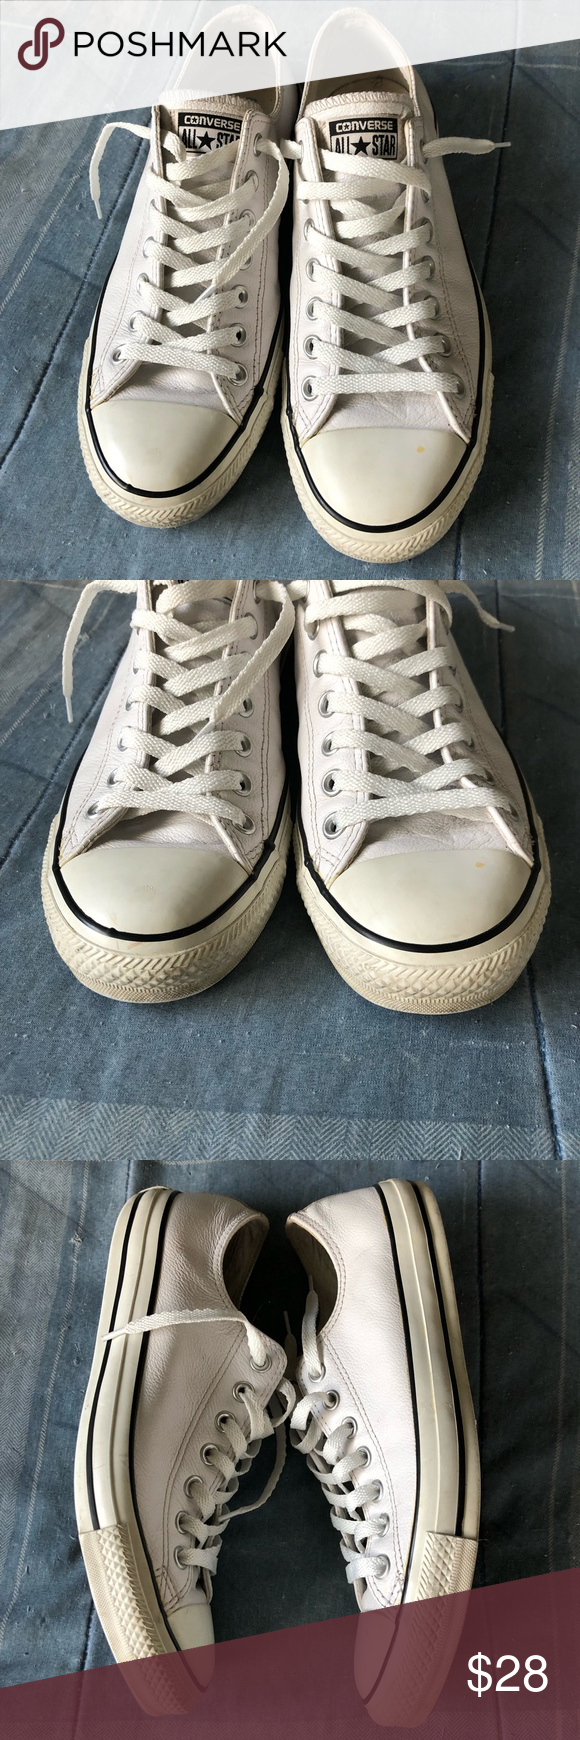 Converse Chuck Taylors Tumbled Leather